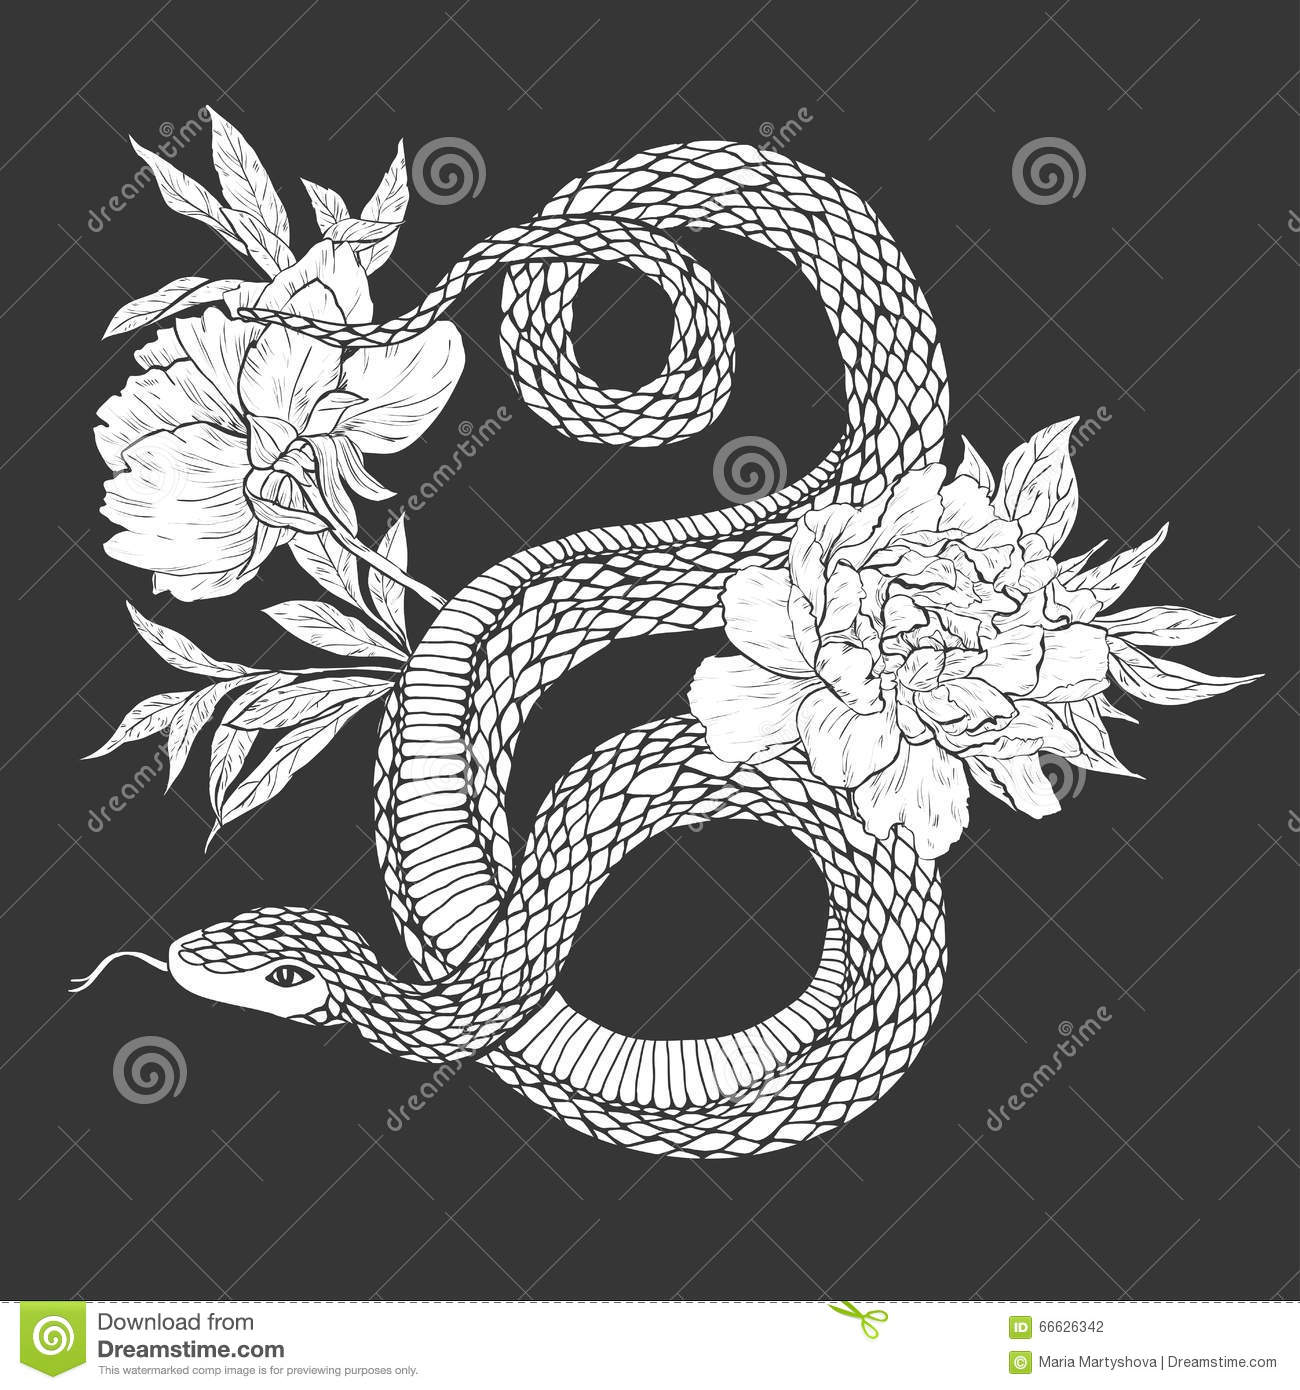 Snakes And Flowers  Tattoo Art, Coloring Books  Stock Vector